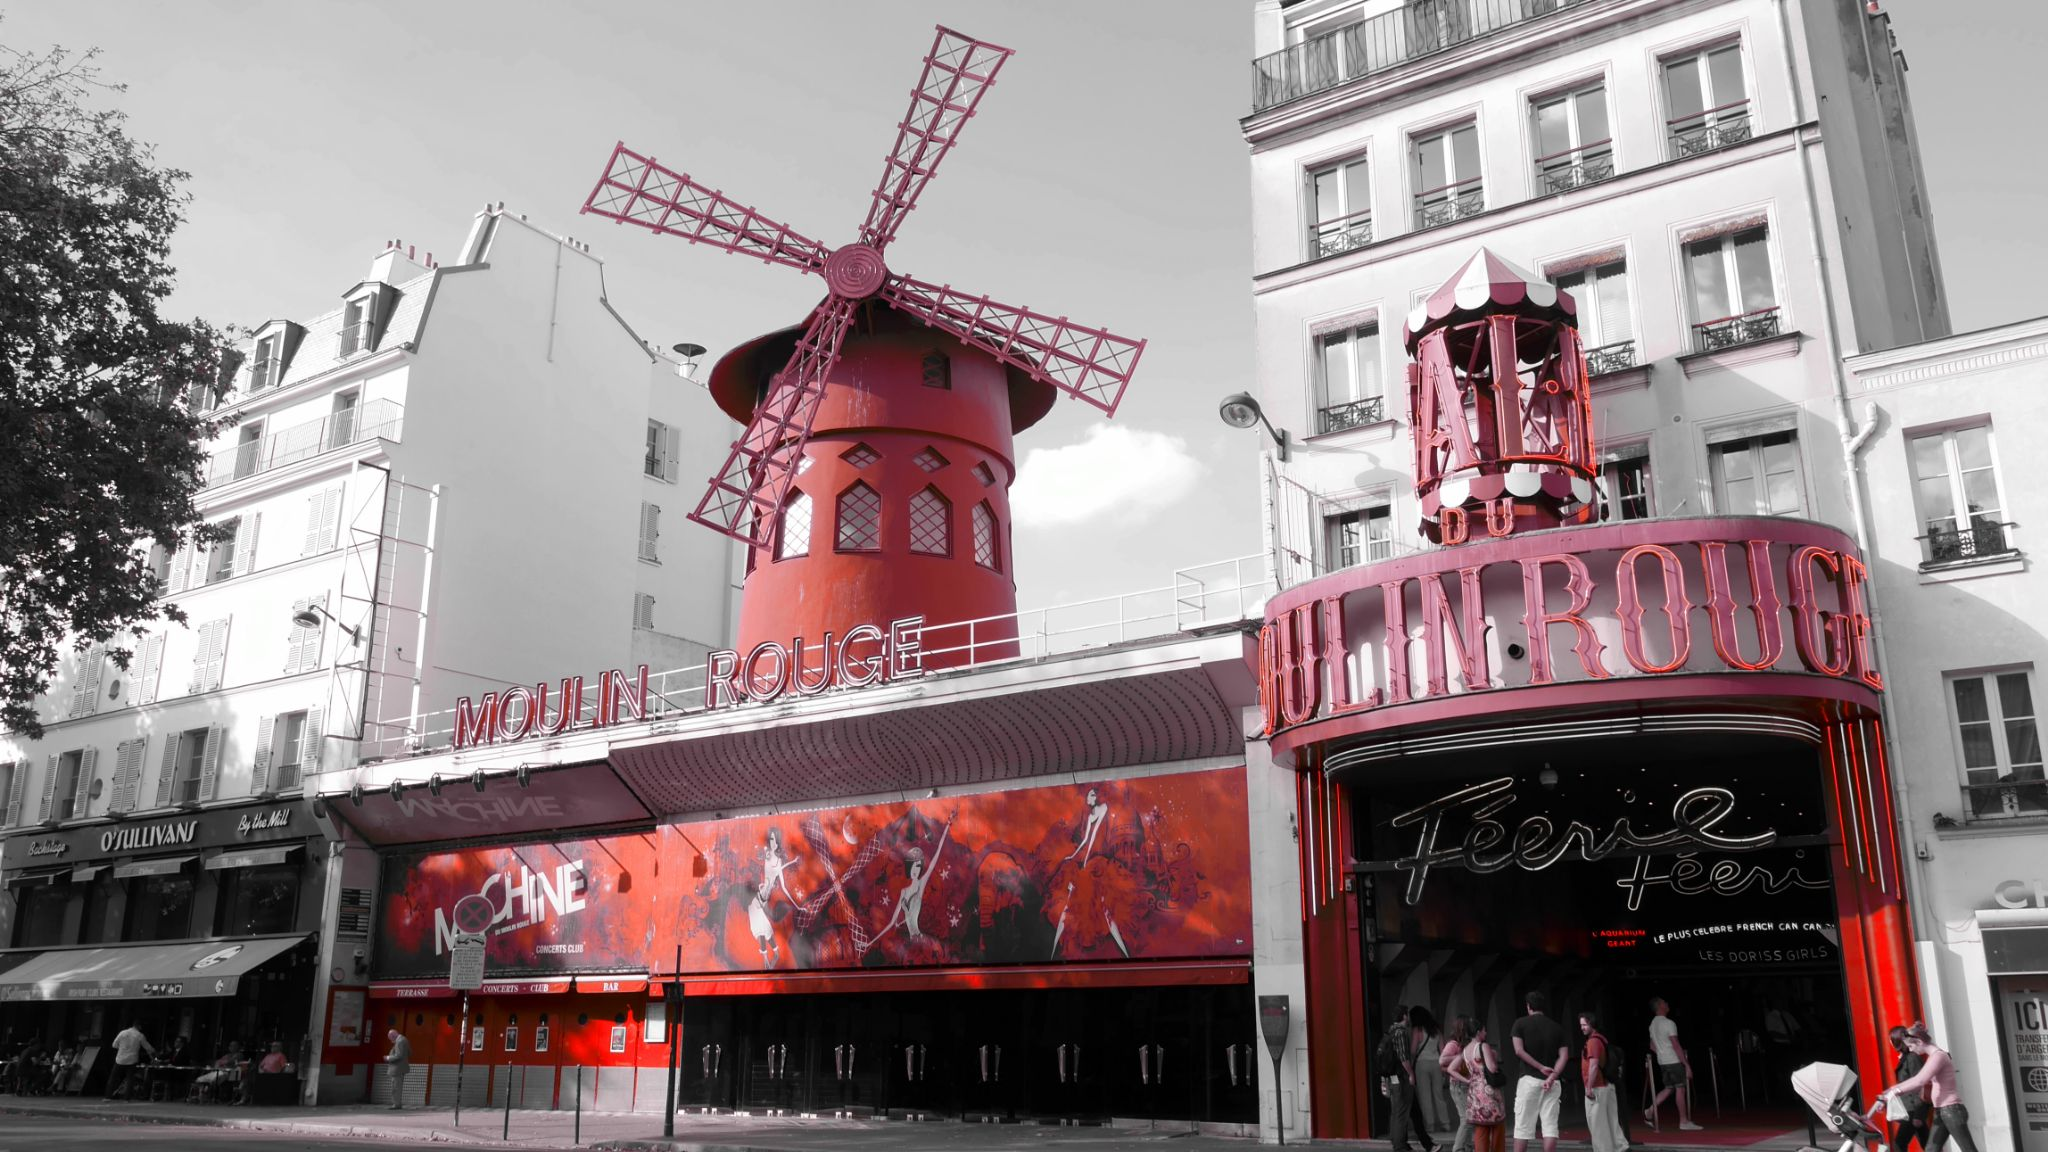 Moulin Rouge by Jean No